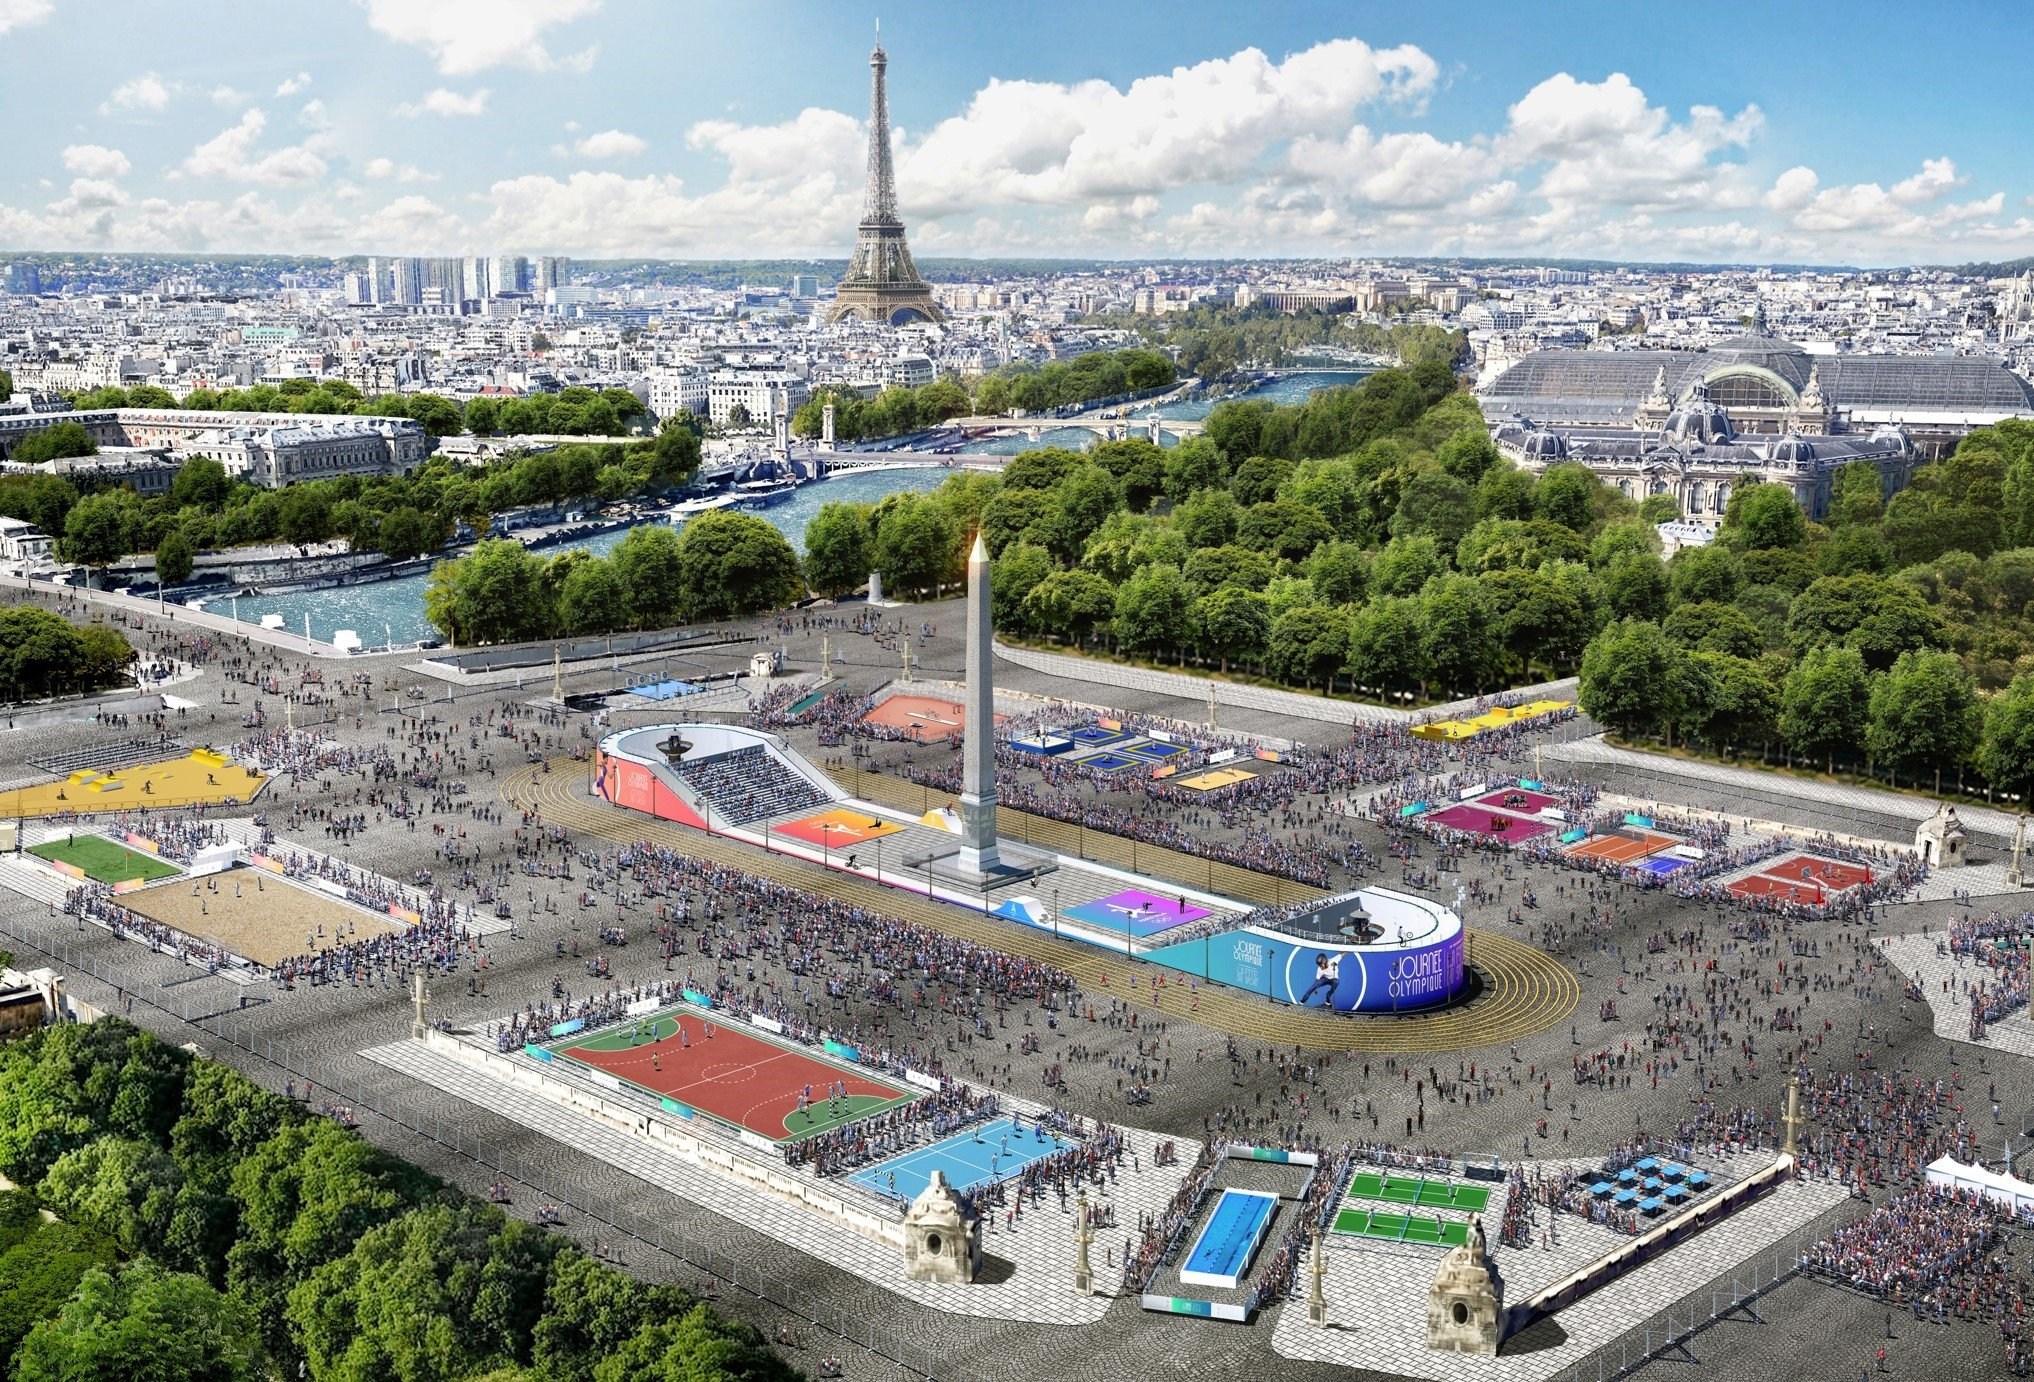 Paris 2024 unveils plans for Olympic Day and Festival of Sport